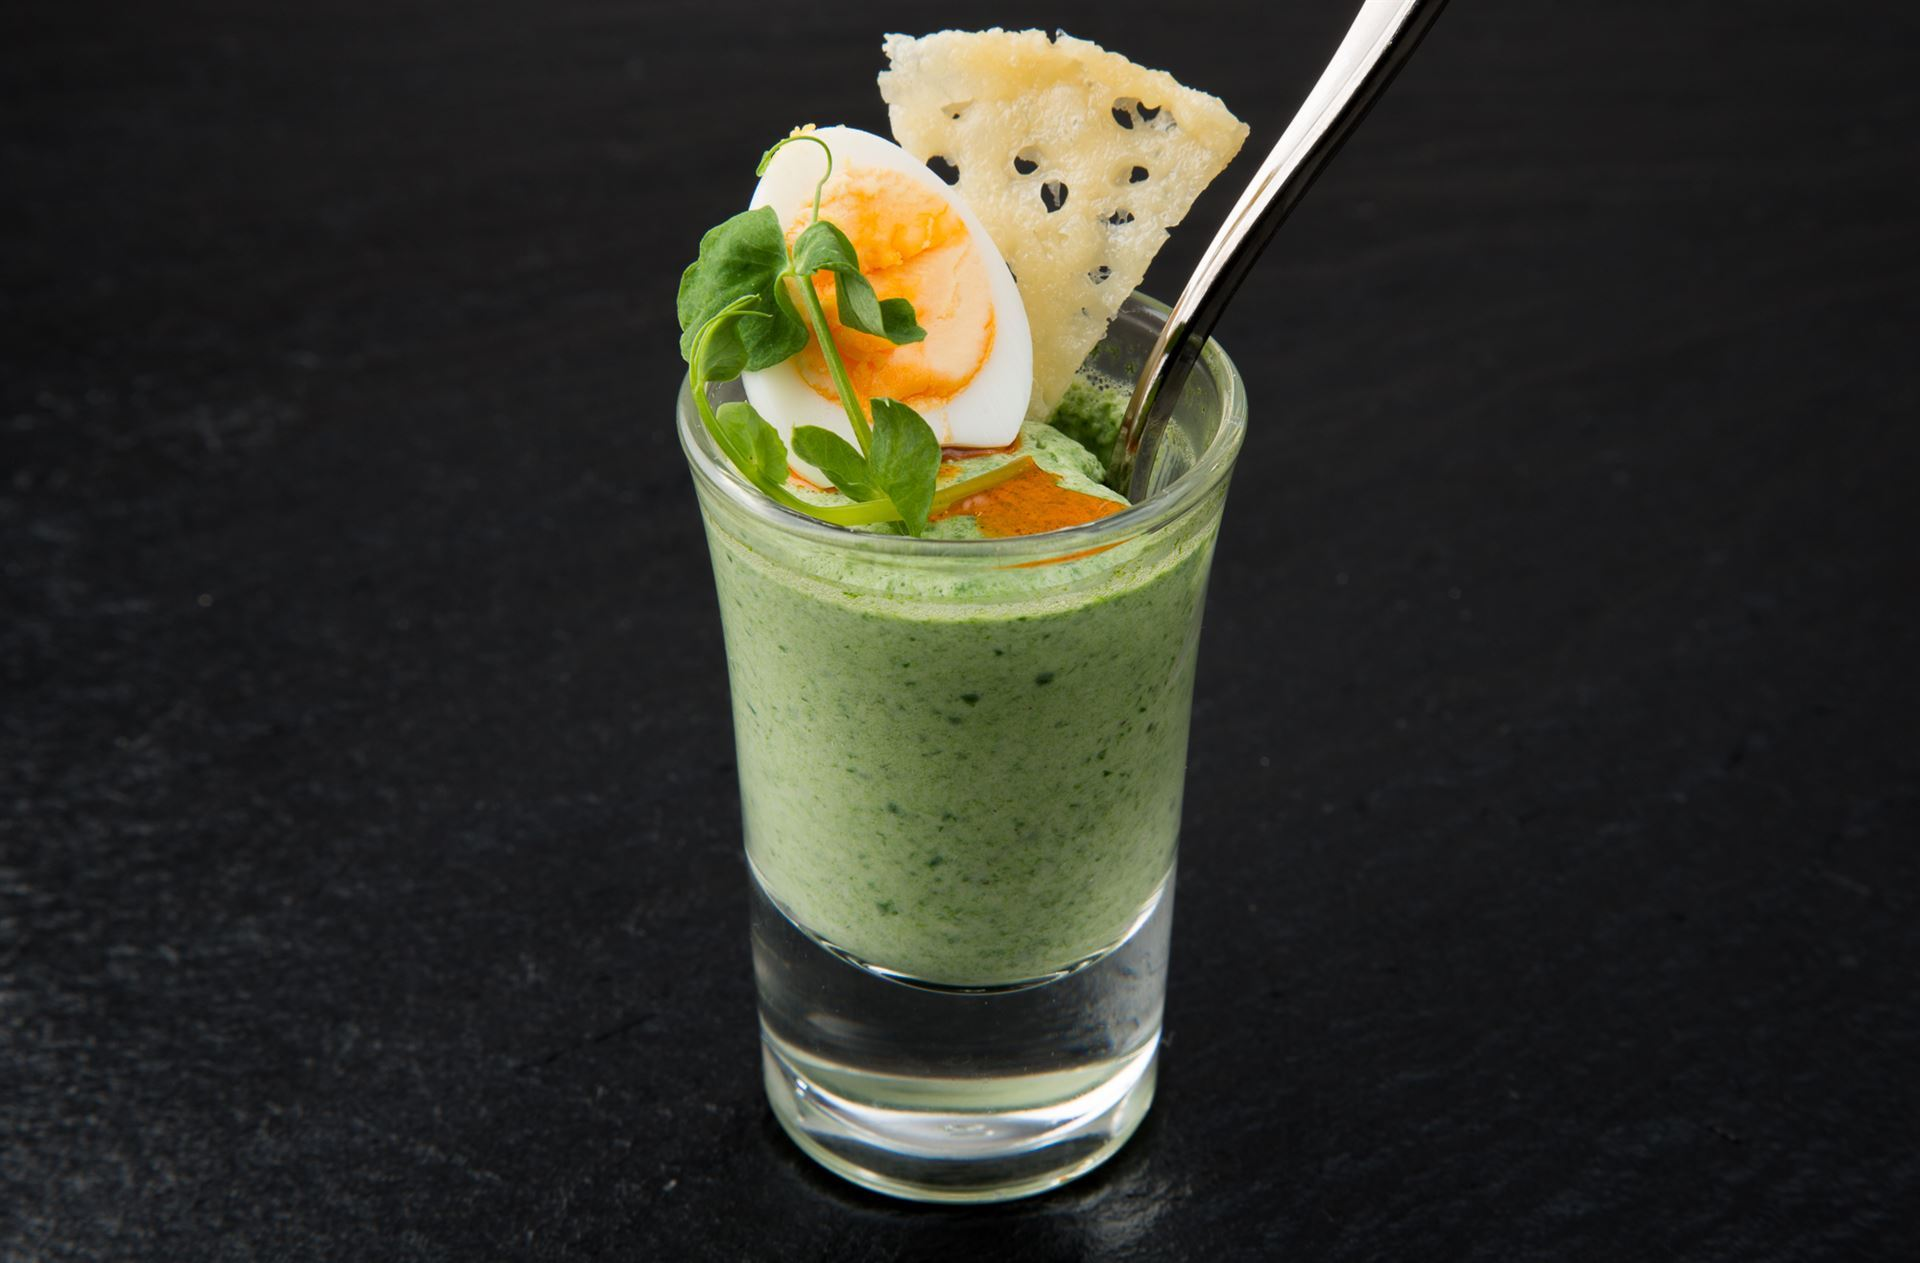 Panna cotta of baby spinach and nutmeg canapés